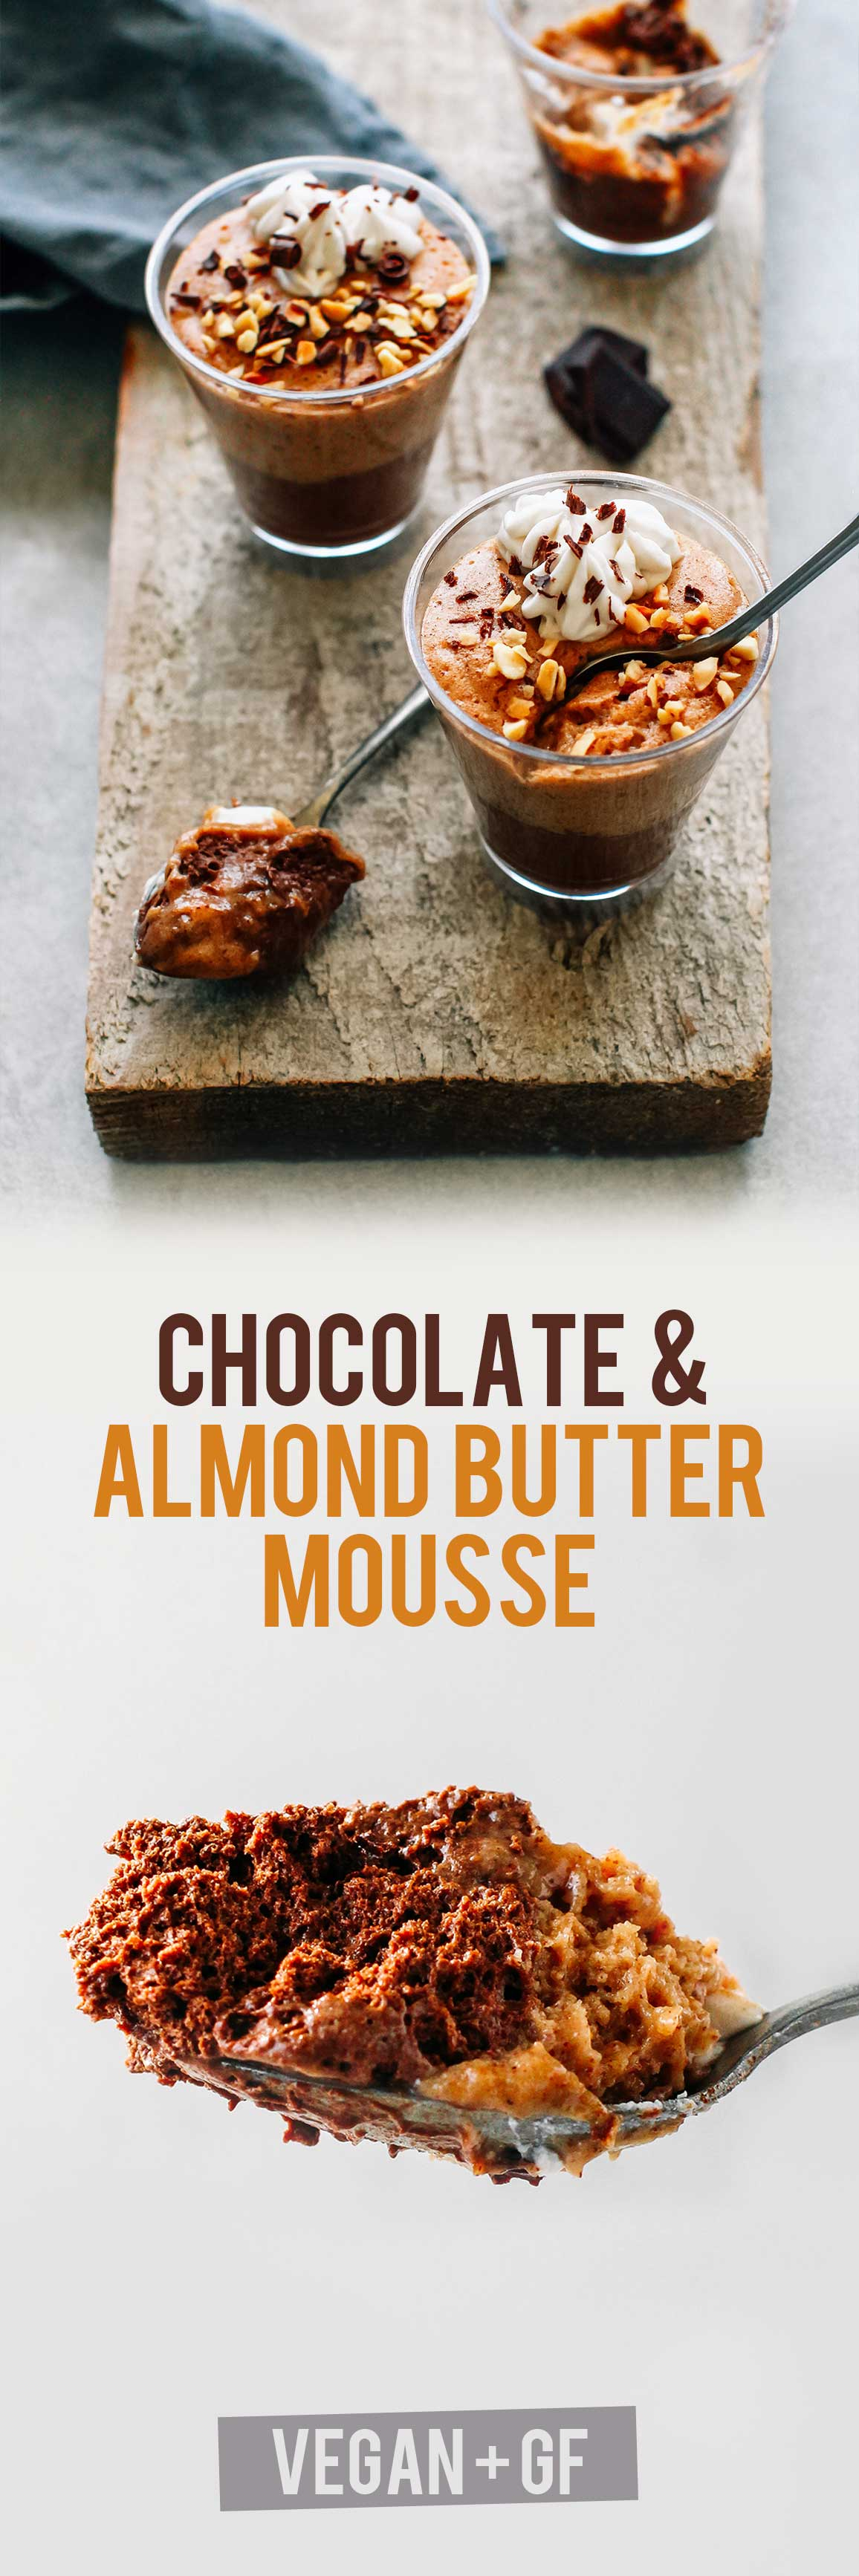 Almond Butter & Chocolate Mousse